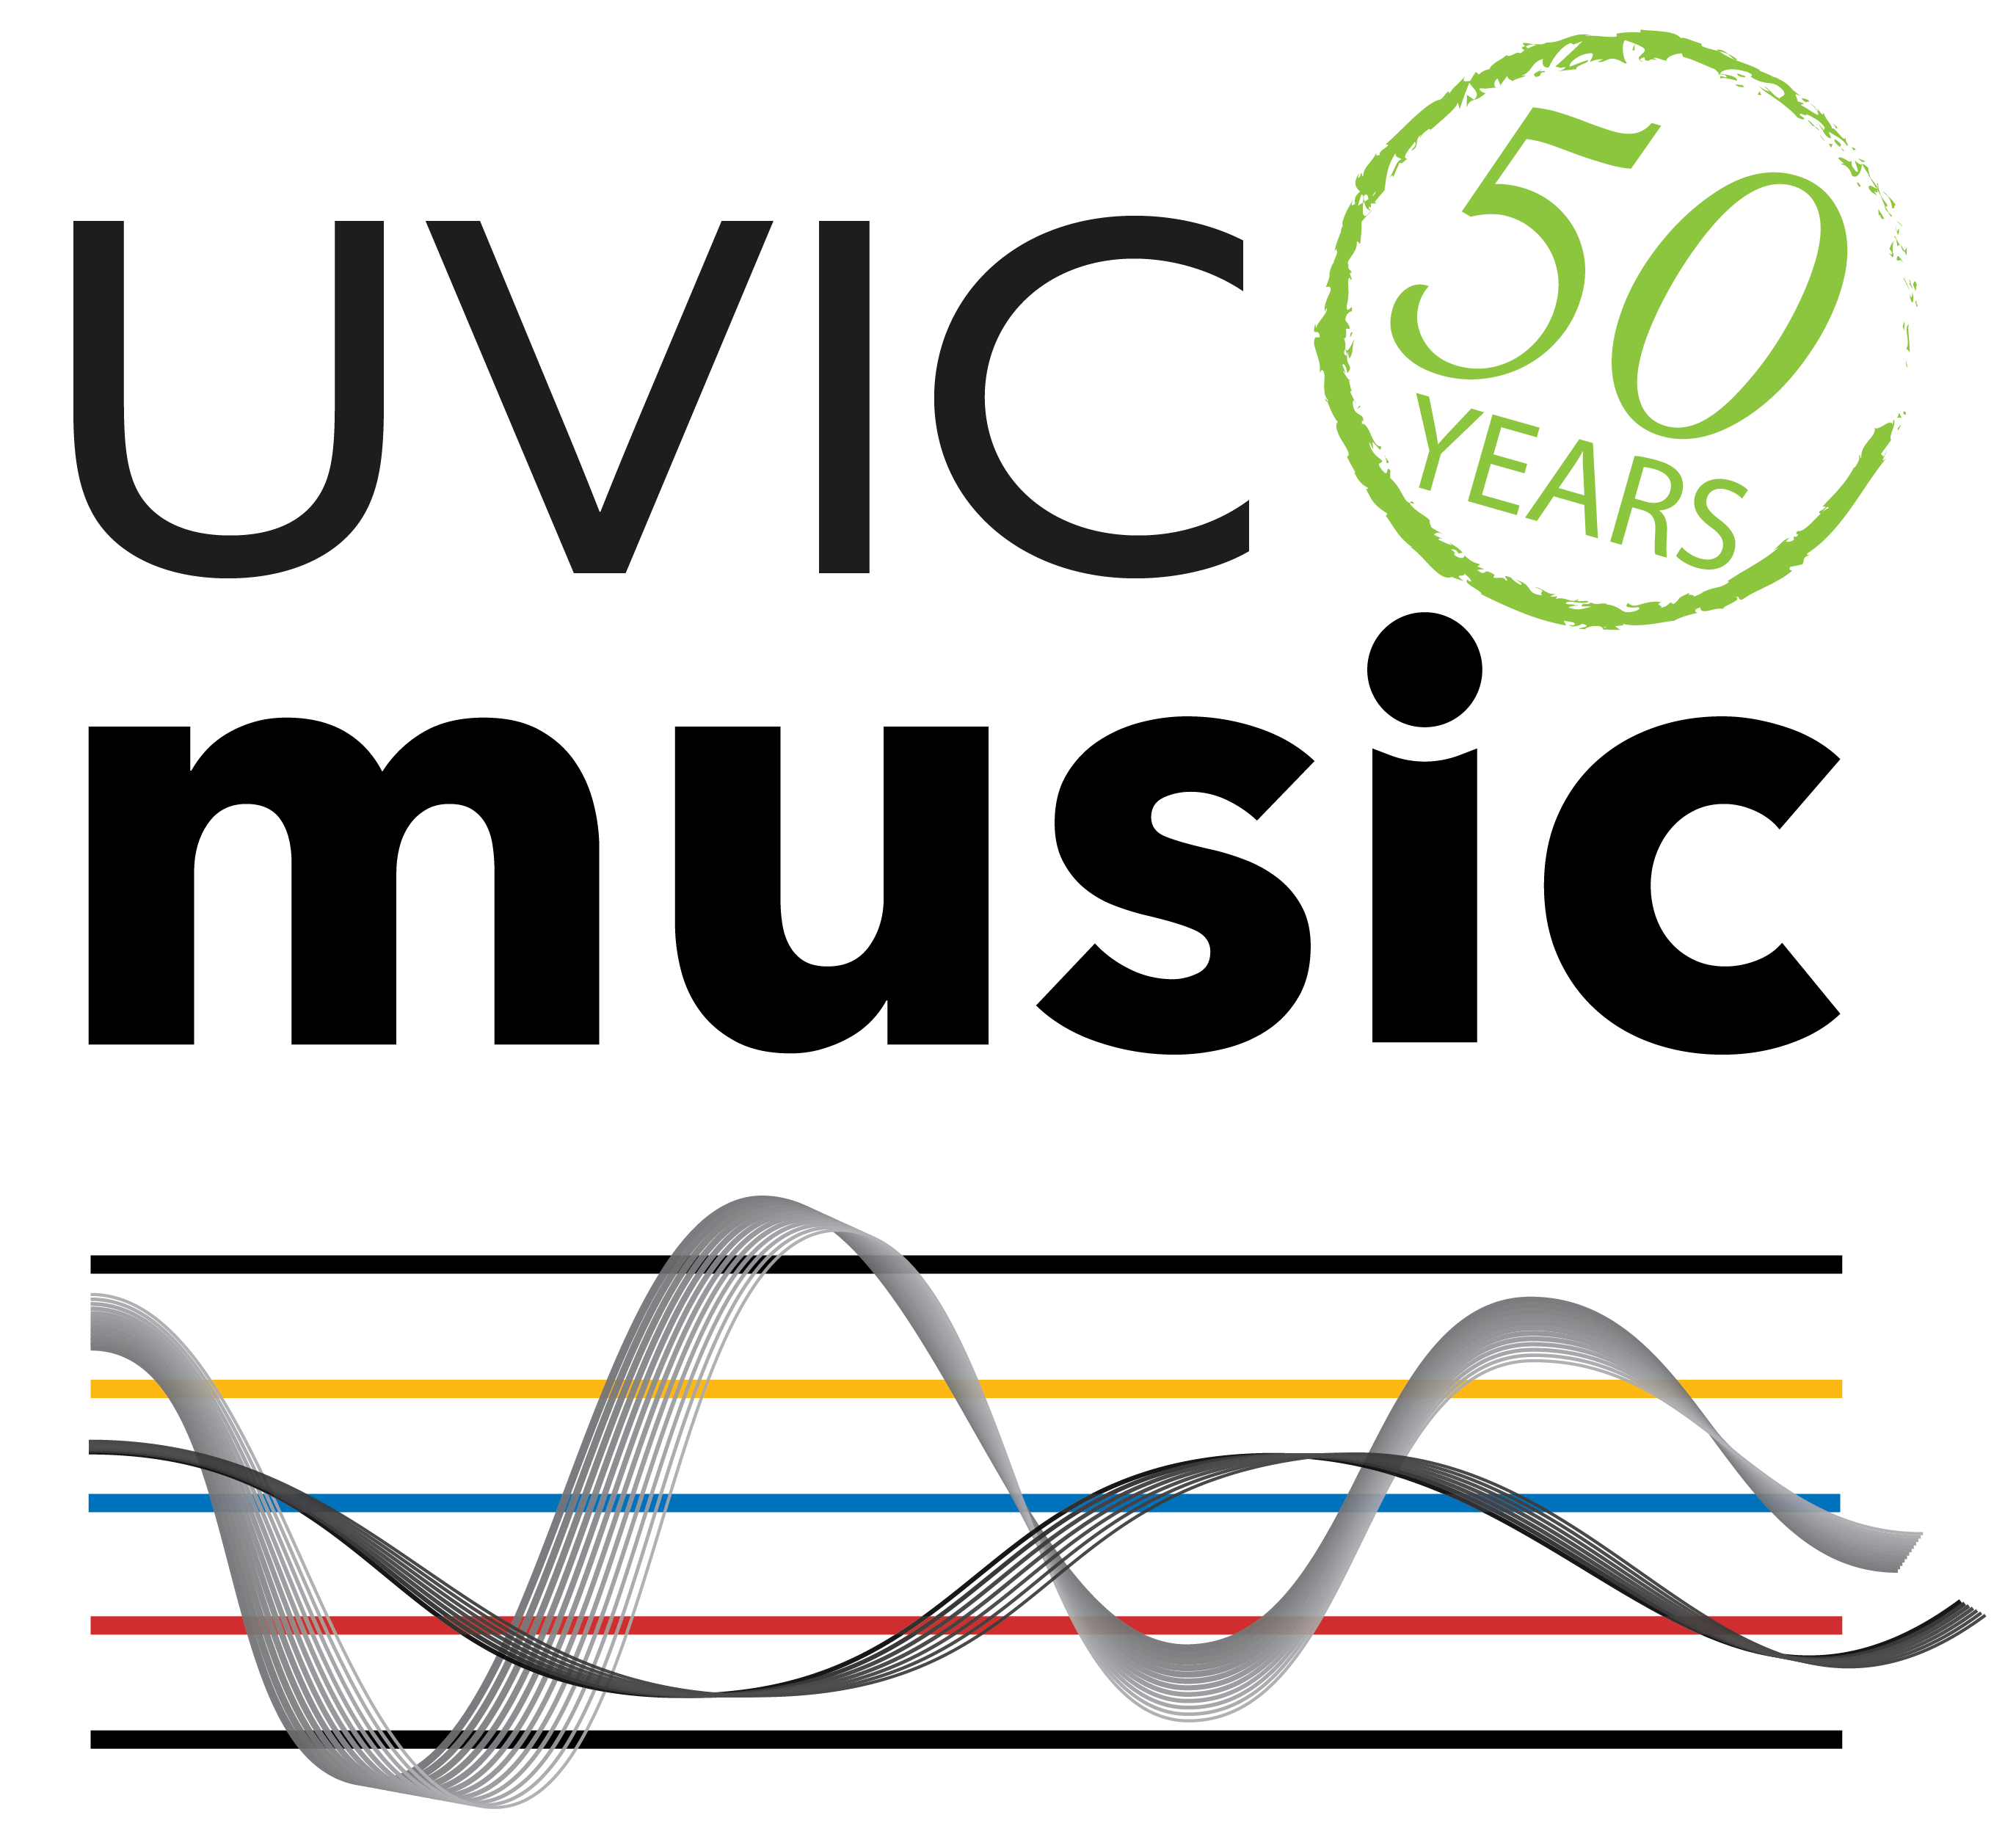 Uvic school of music. Schedule clipart timeline